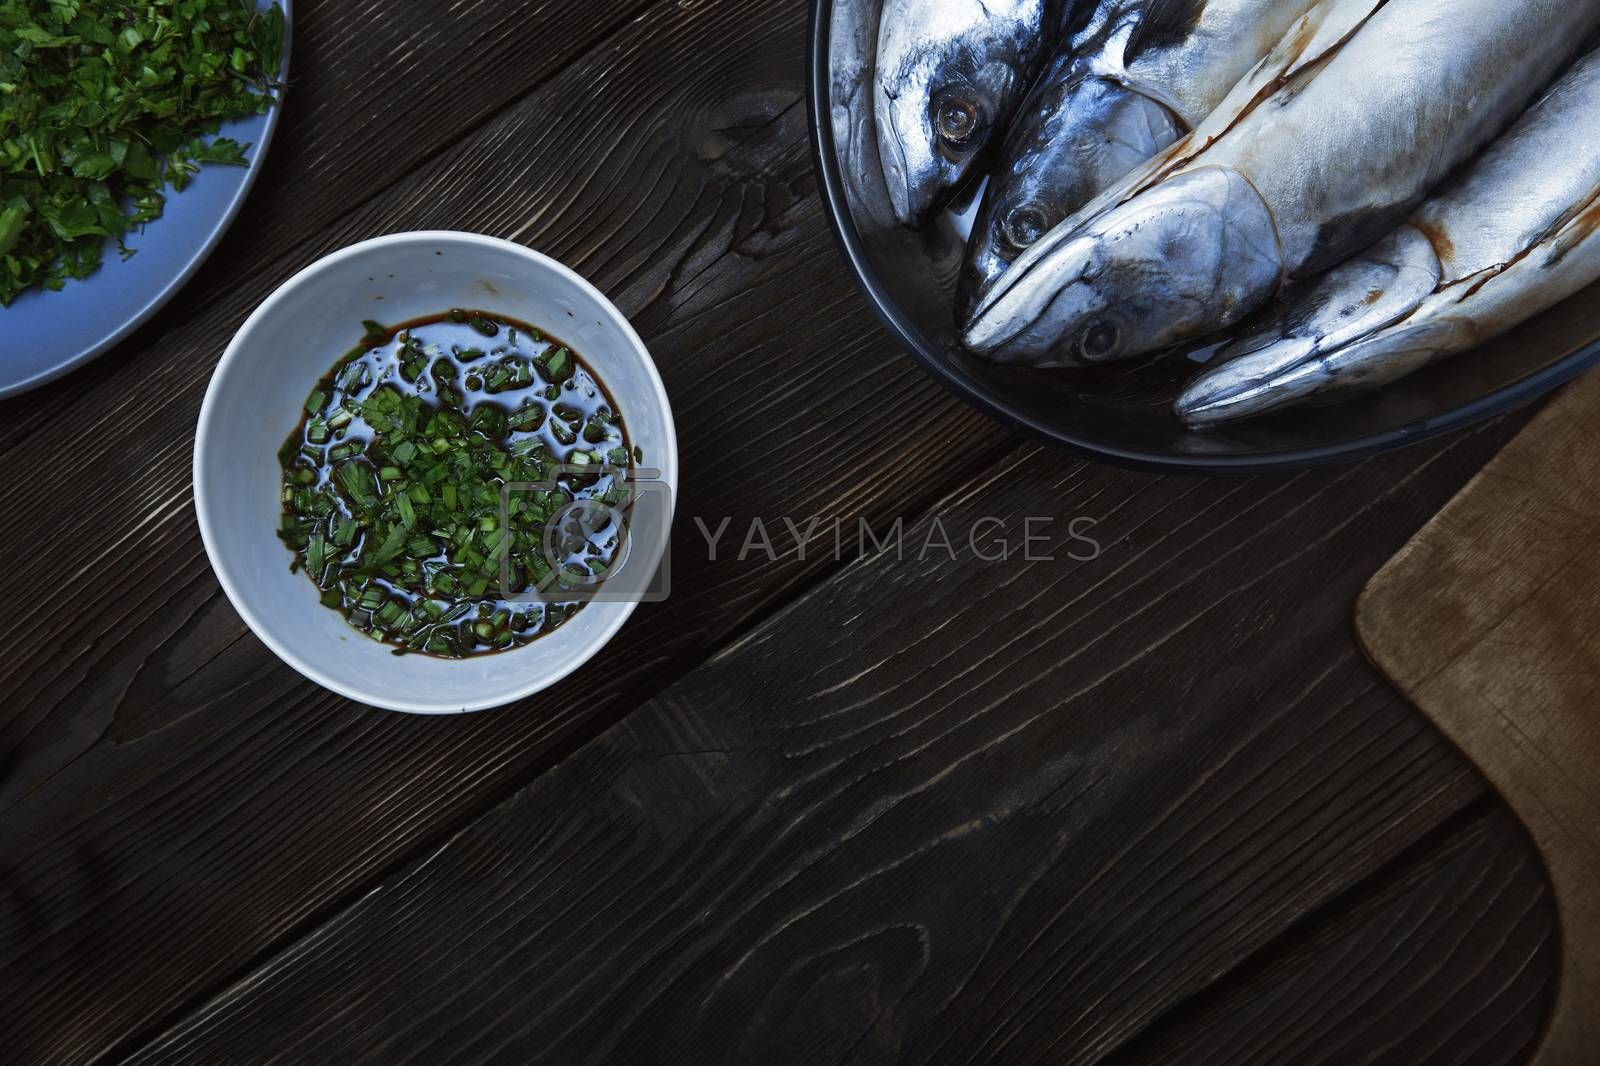 Fish with herbs and vegetables on a wooden table